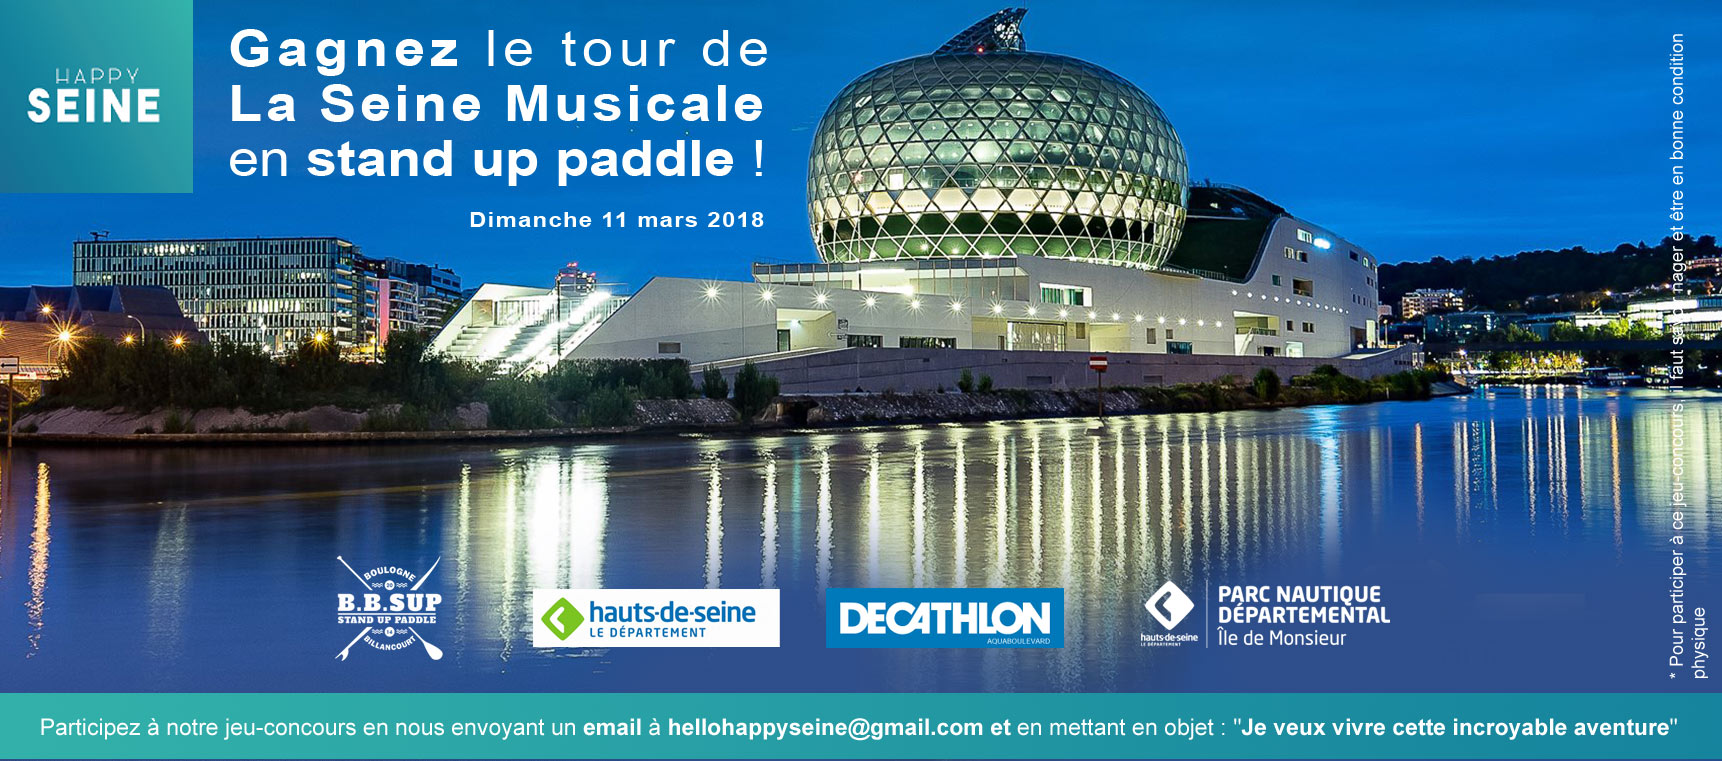 L'incroyable tour de La Seine Musicale en paddle @happy seine